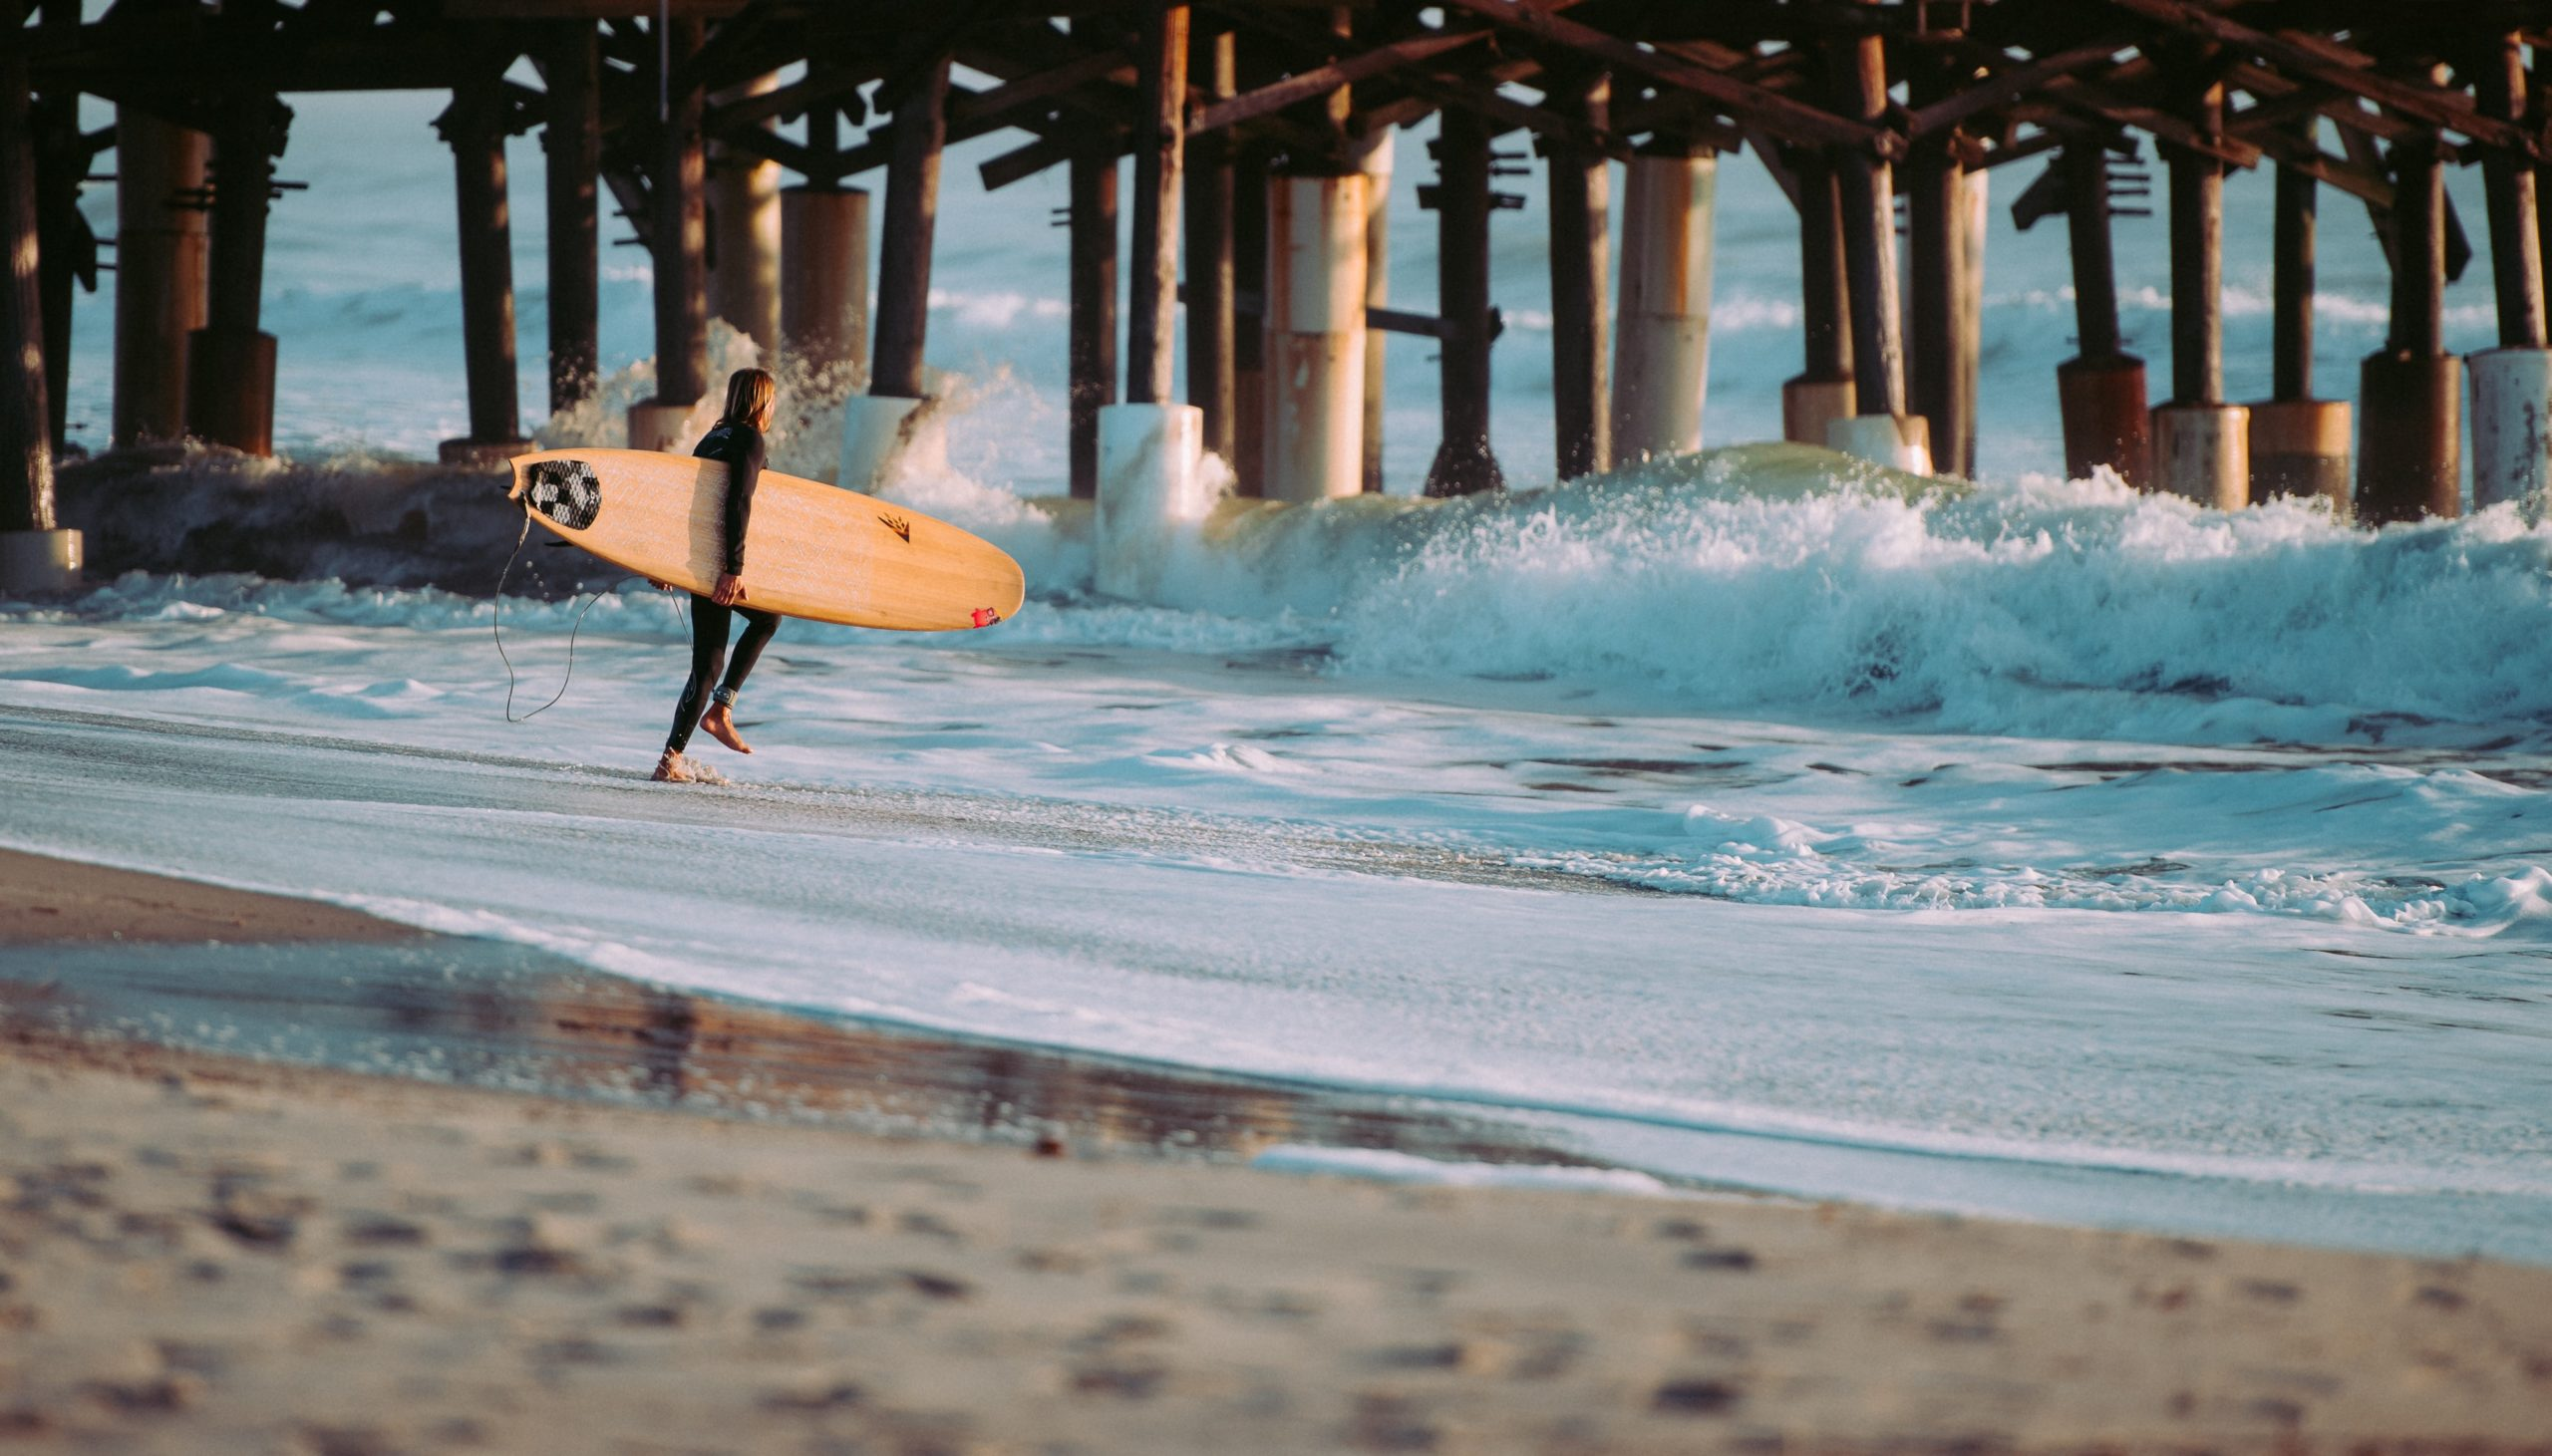 Best Surfing Beaches In The World For Holiday Surfing